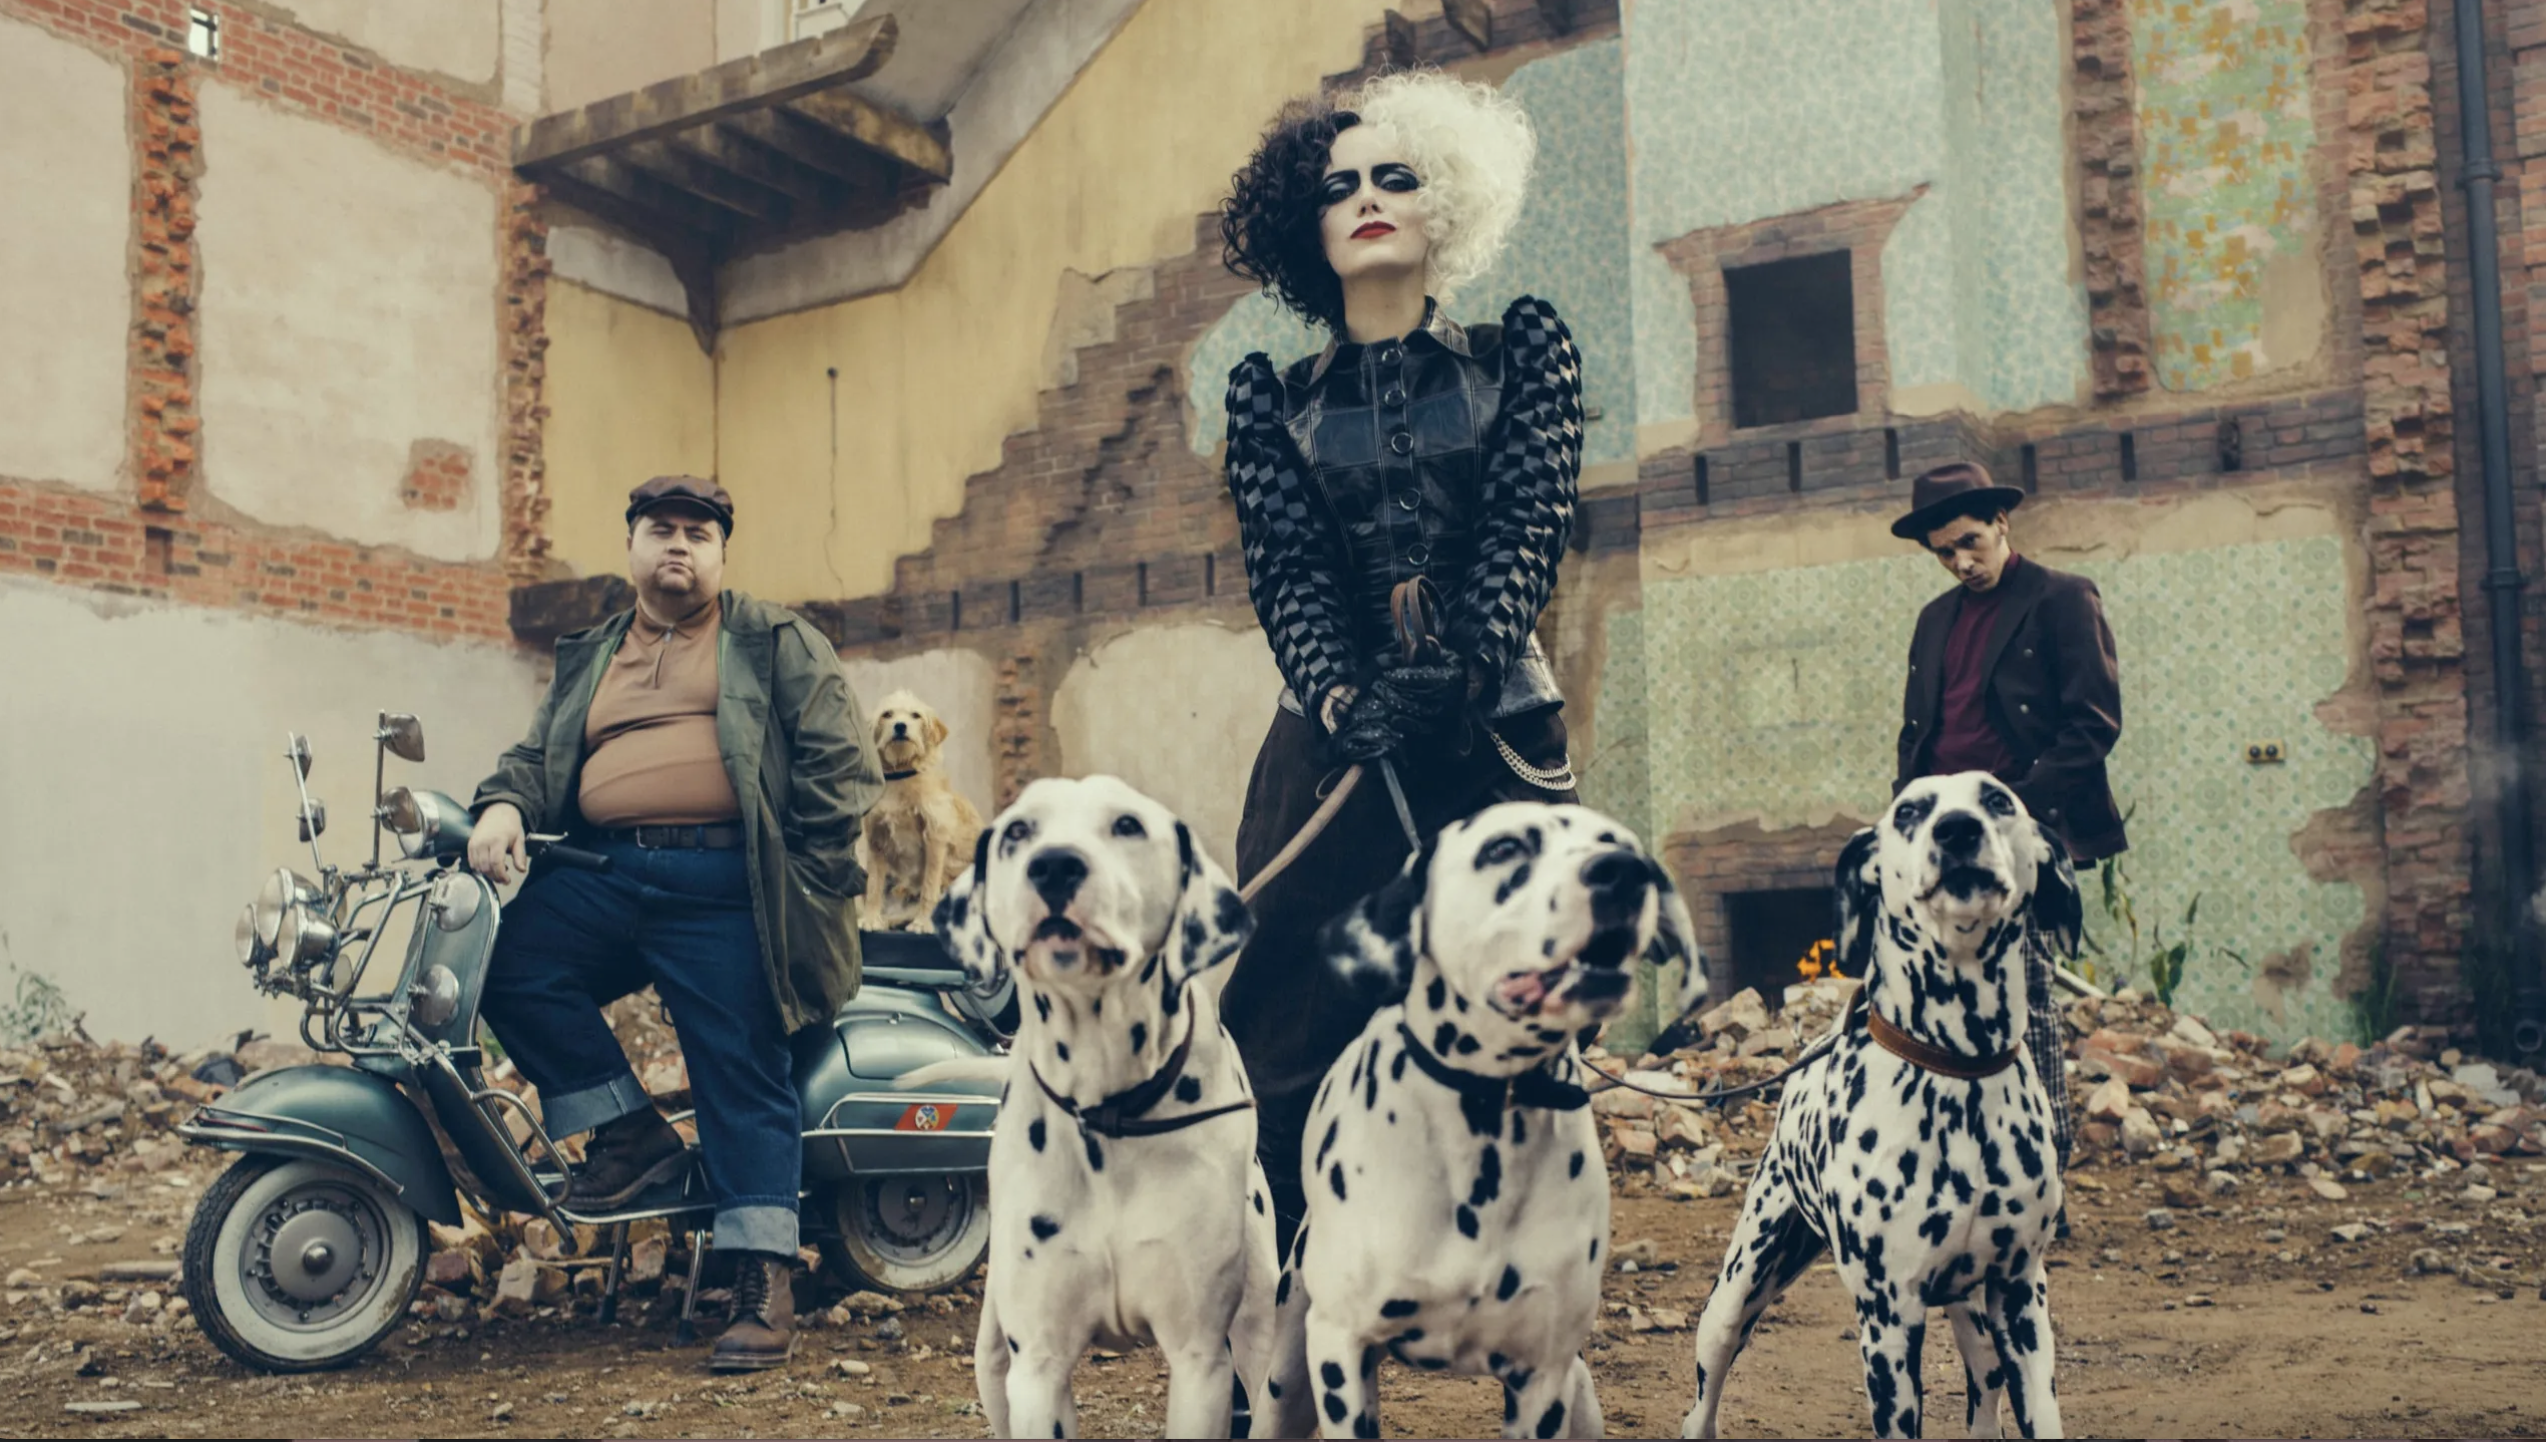 <h1>How Estella became Cruella</h1><h2>Disney has filmed the story of the antagonist from «101 Dalmatians»</h2>